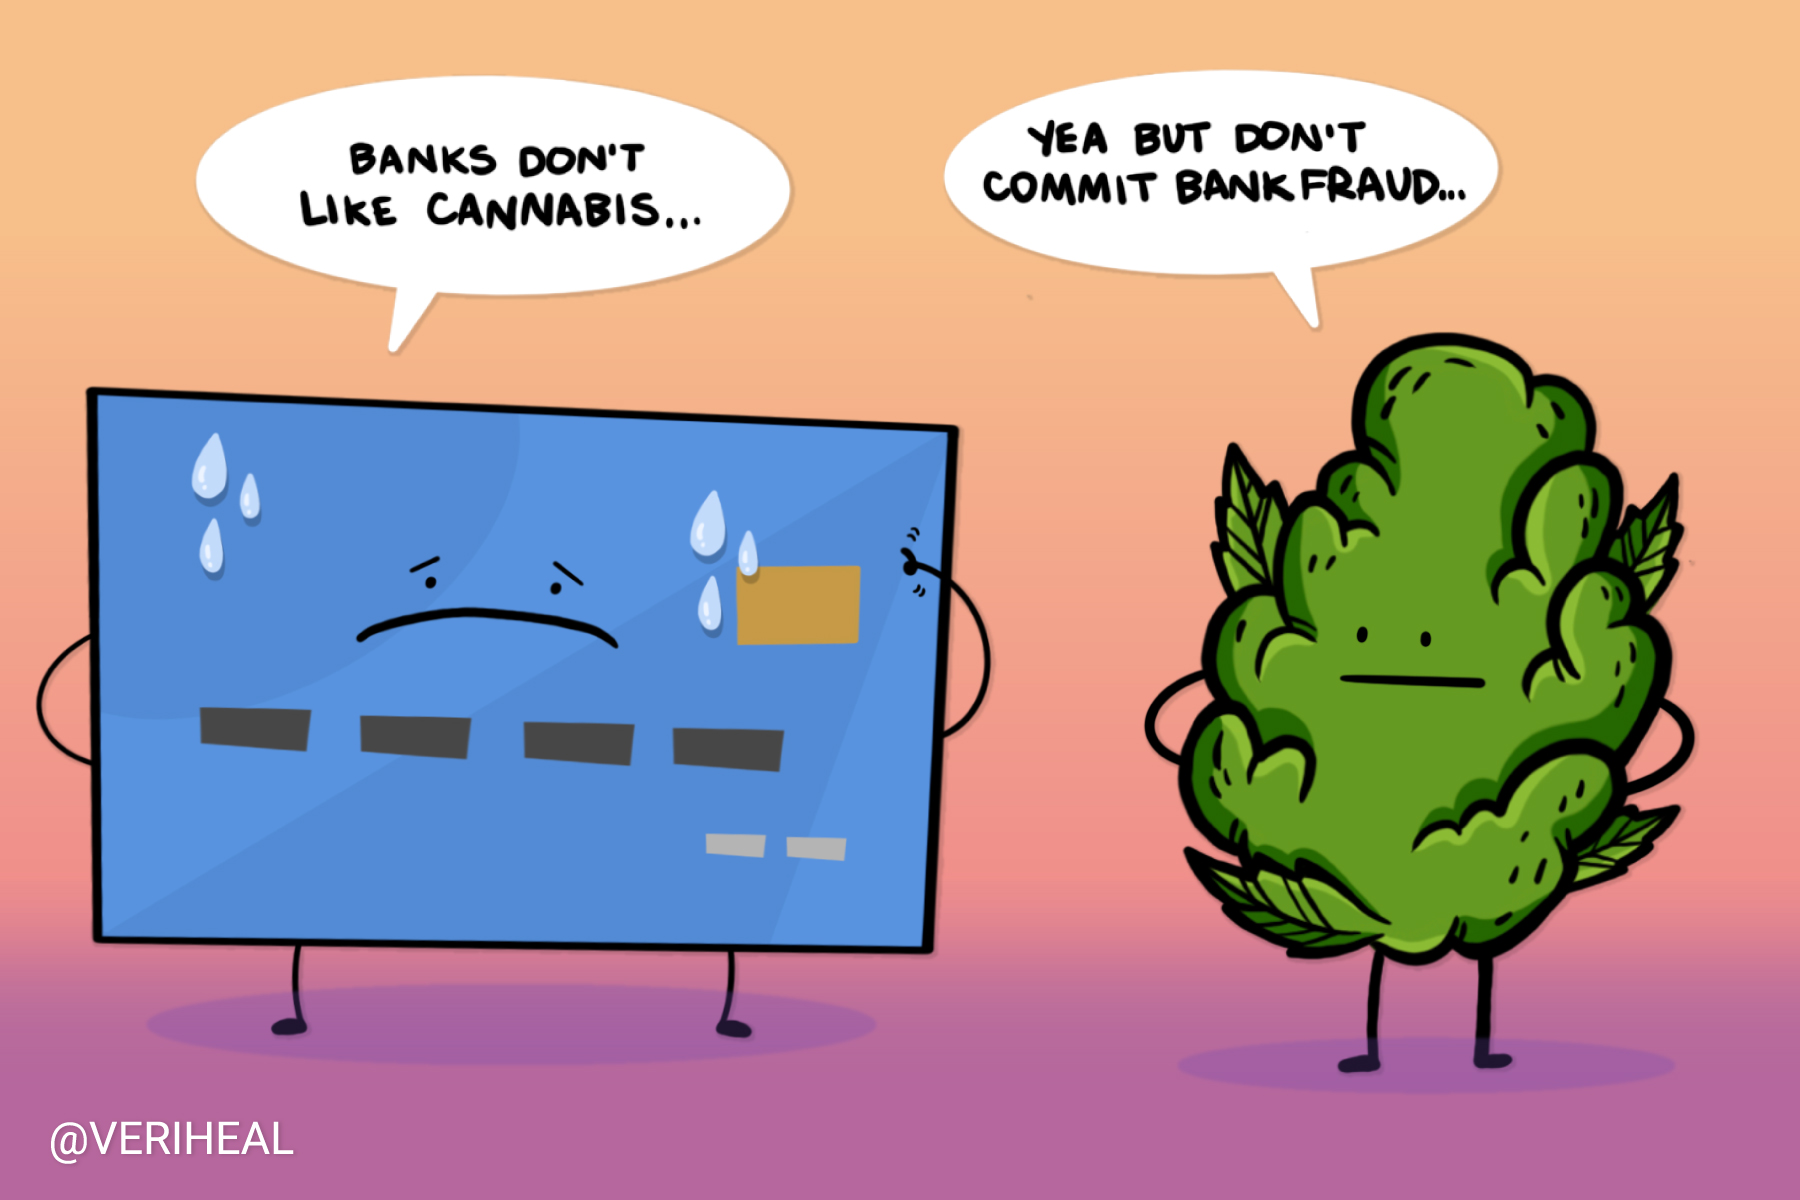 Why Would a CEO of a Successful Cannabis Company Commit Bank Fraud?